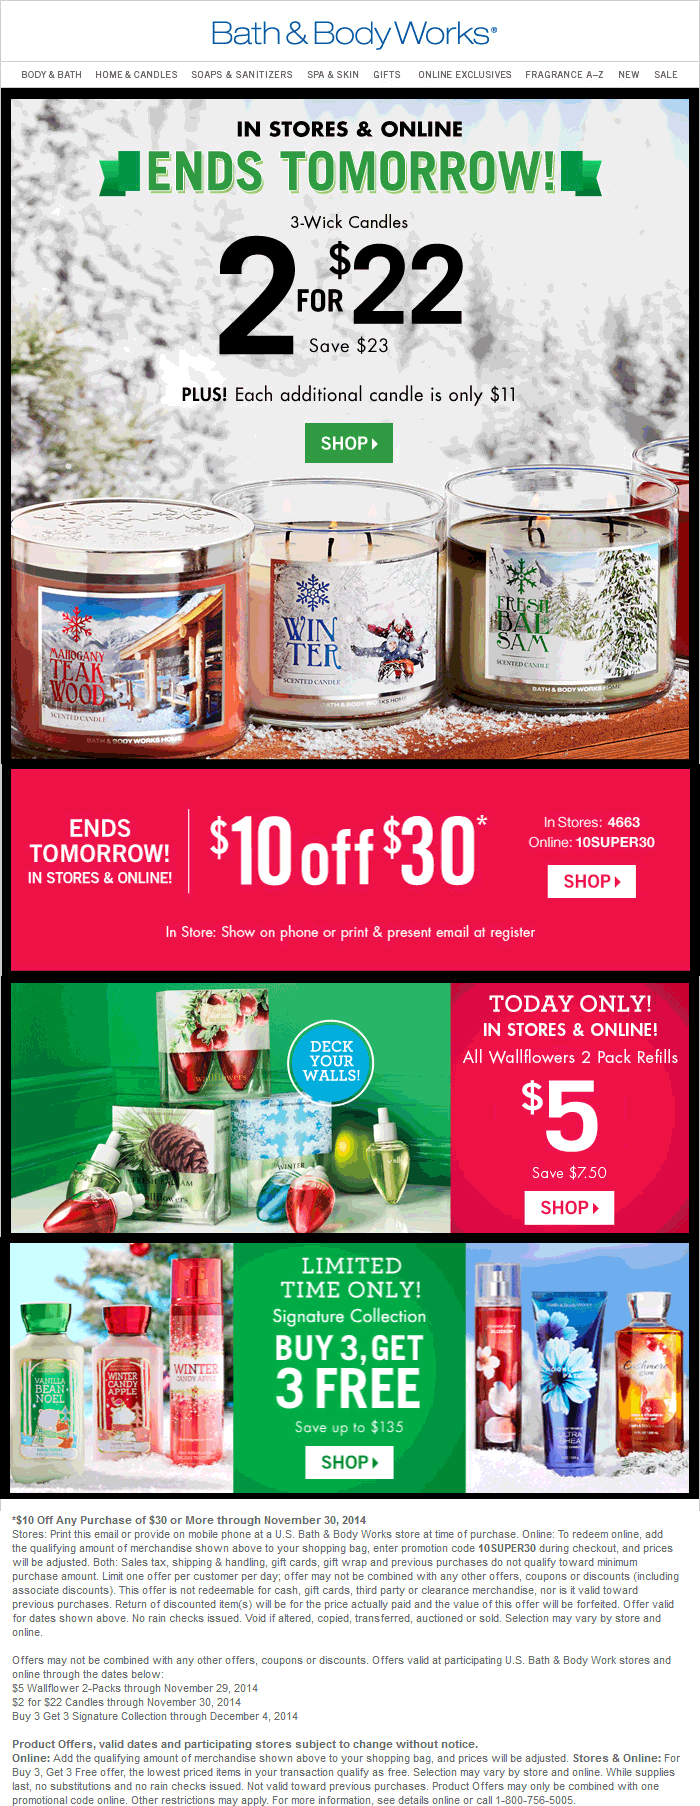 Bath & Body Works Coupon August 2017 $10 off $30 at Bath & Body Works, or online via promo code 10SUPER30